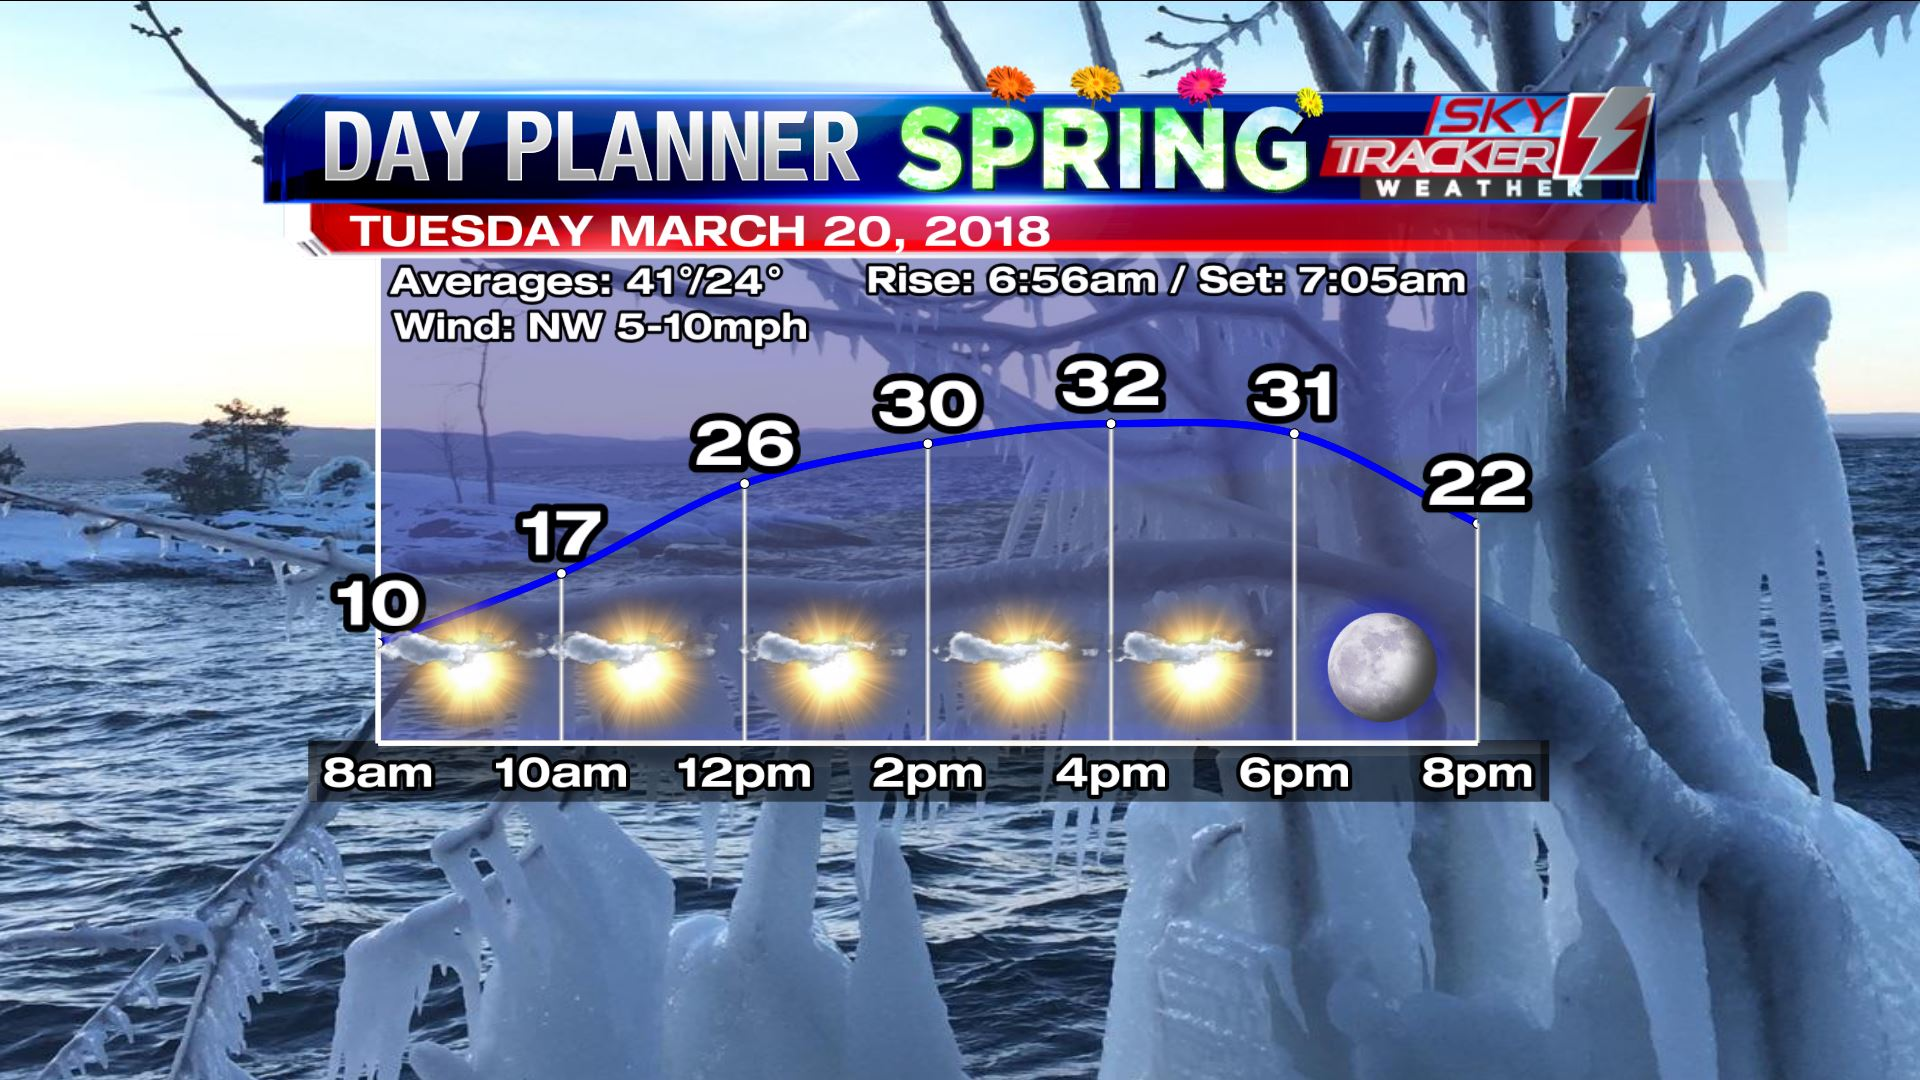 Planner for Tuesday March 20 2018